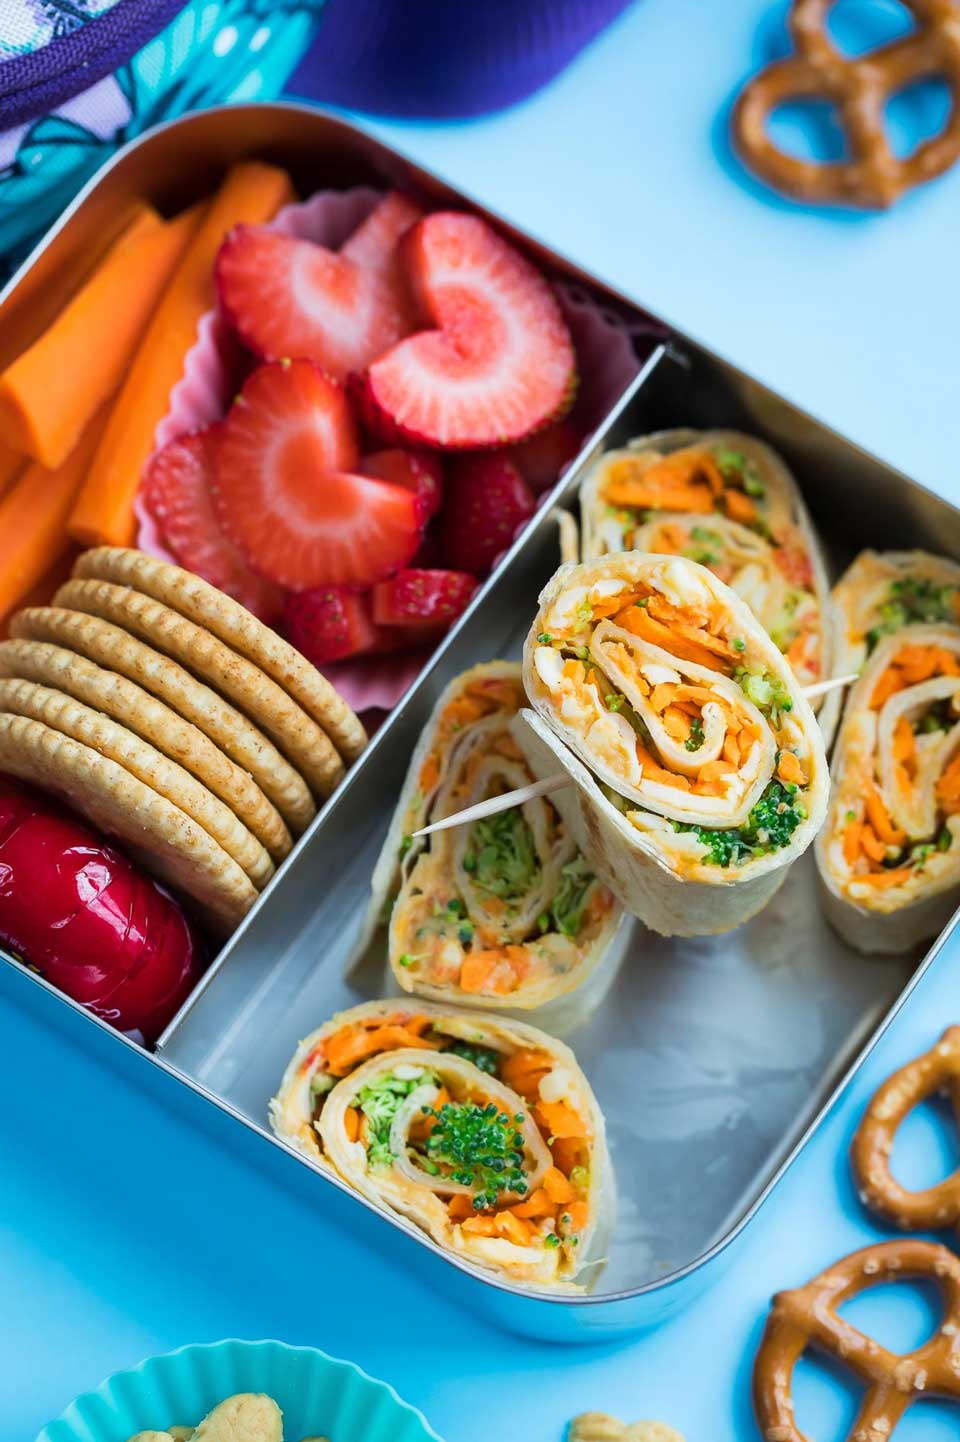 Open lunchbox with 5 of these roll ups in one compartment and carrot sticks, strawberries and crackers in a second area.